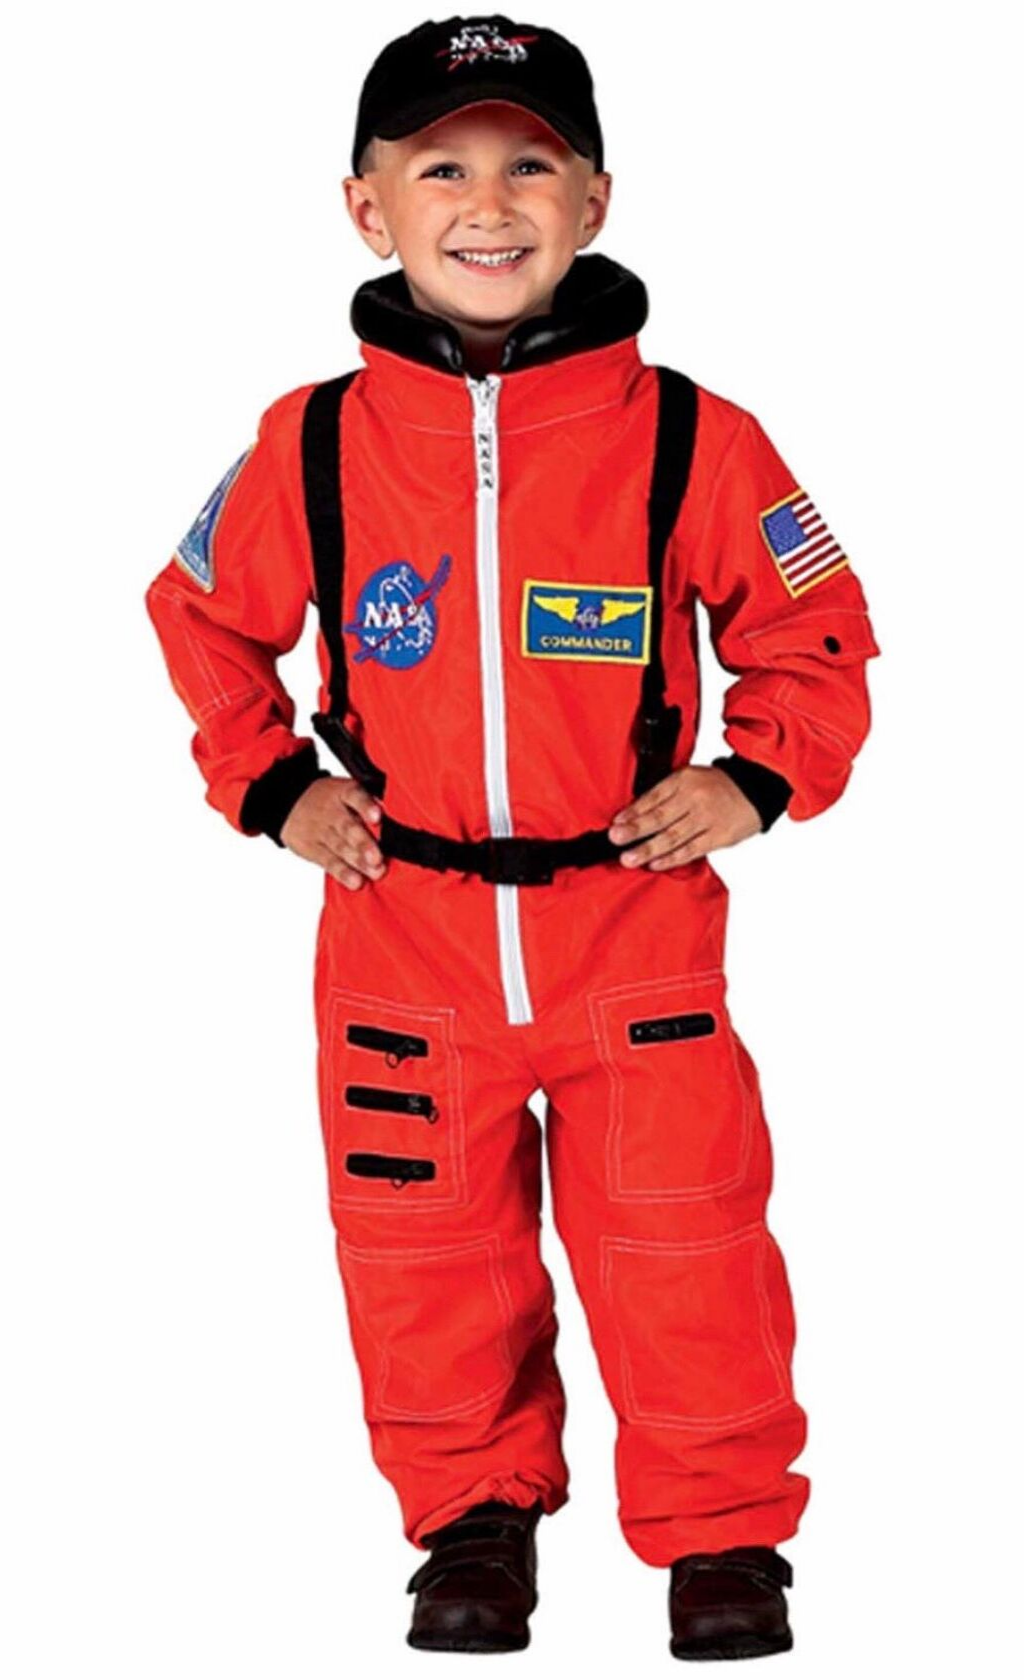 Jr. Astronaut Suit with Embroidered Cap and NASA patches